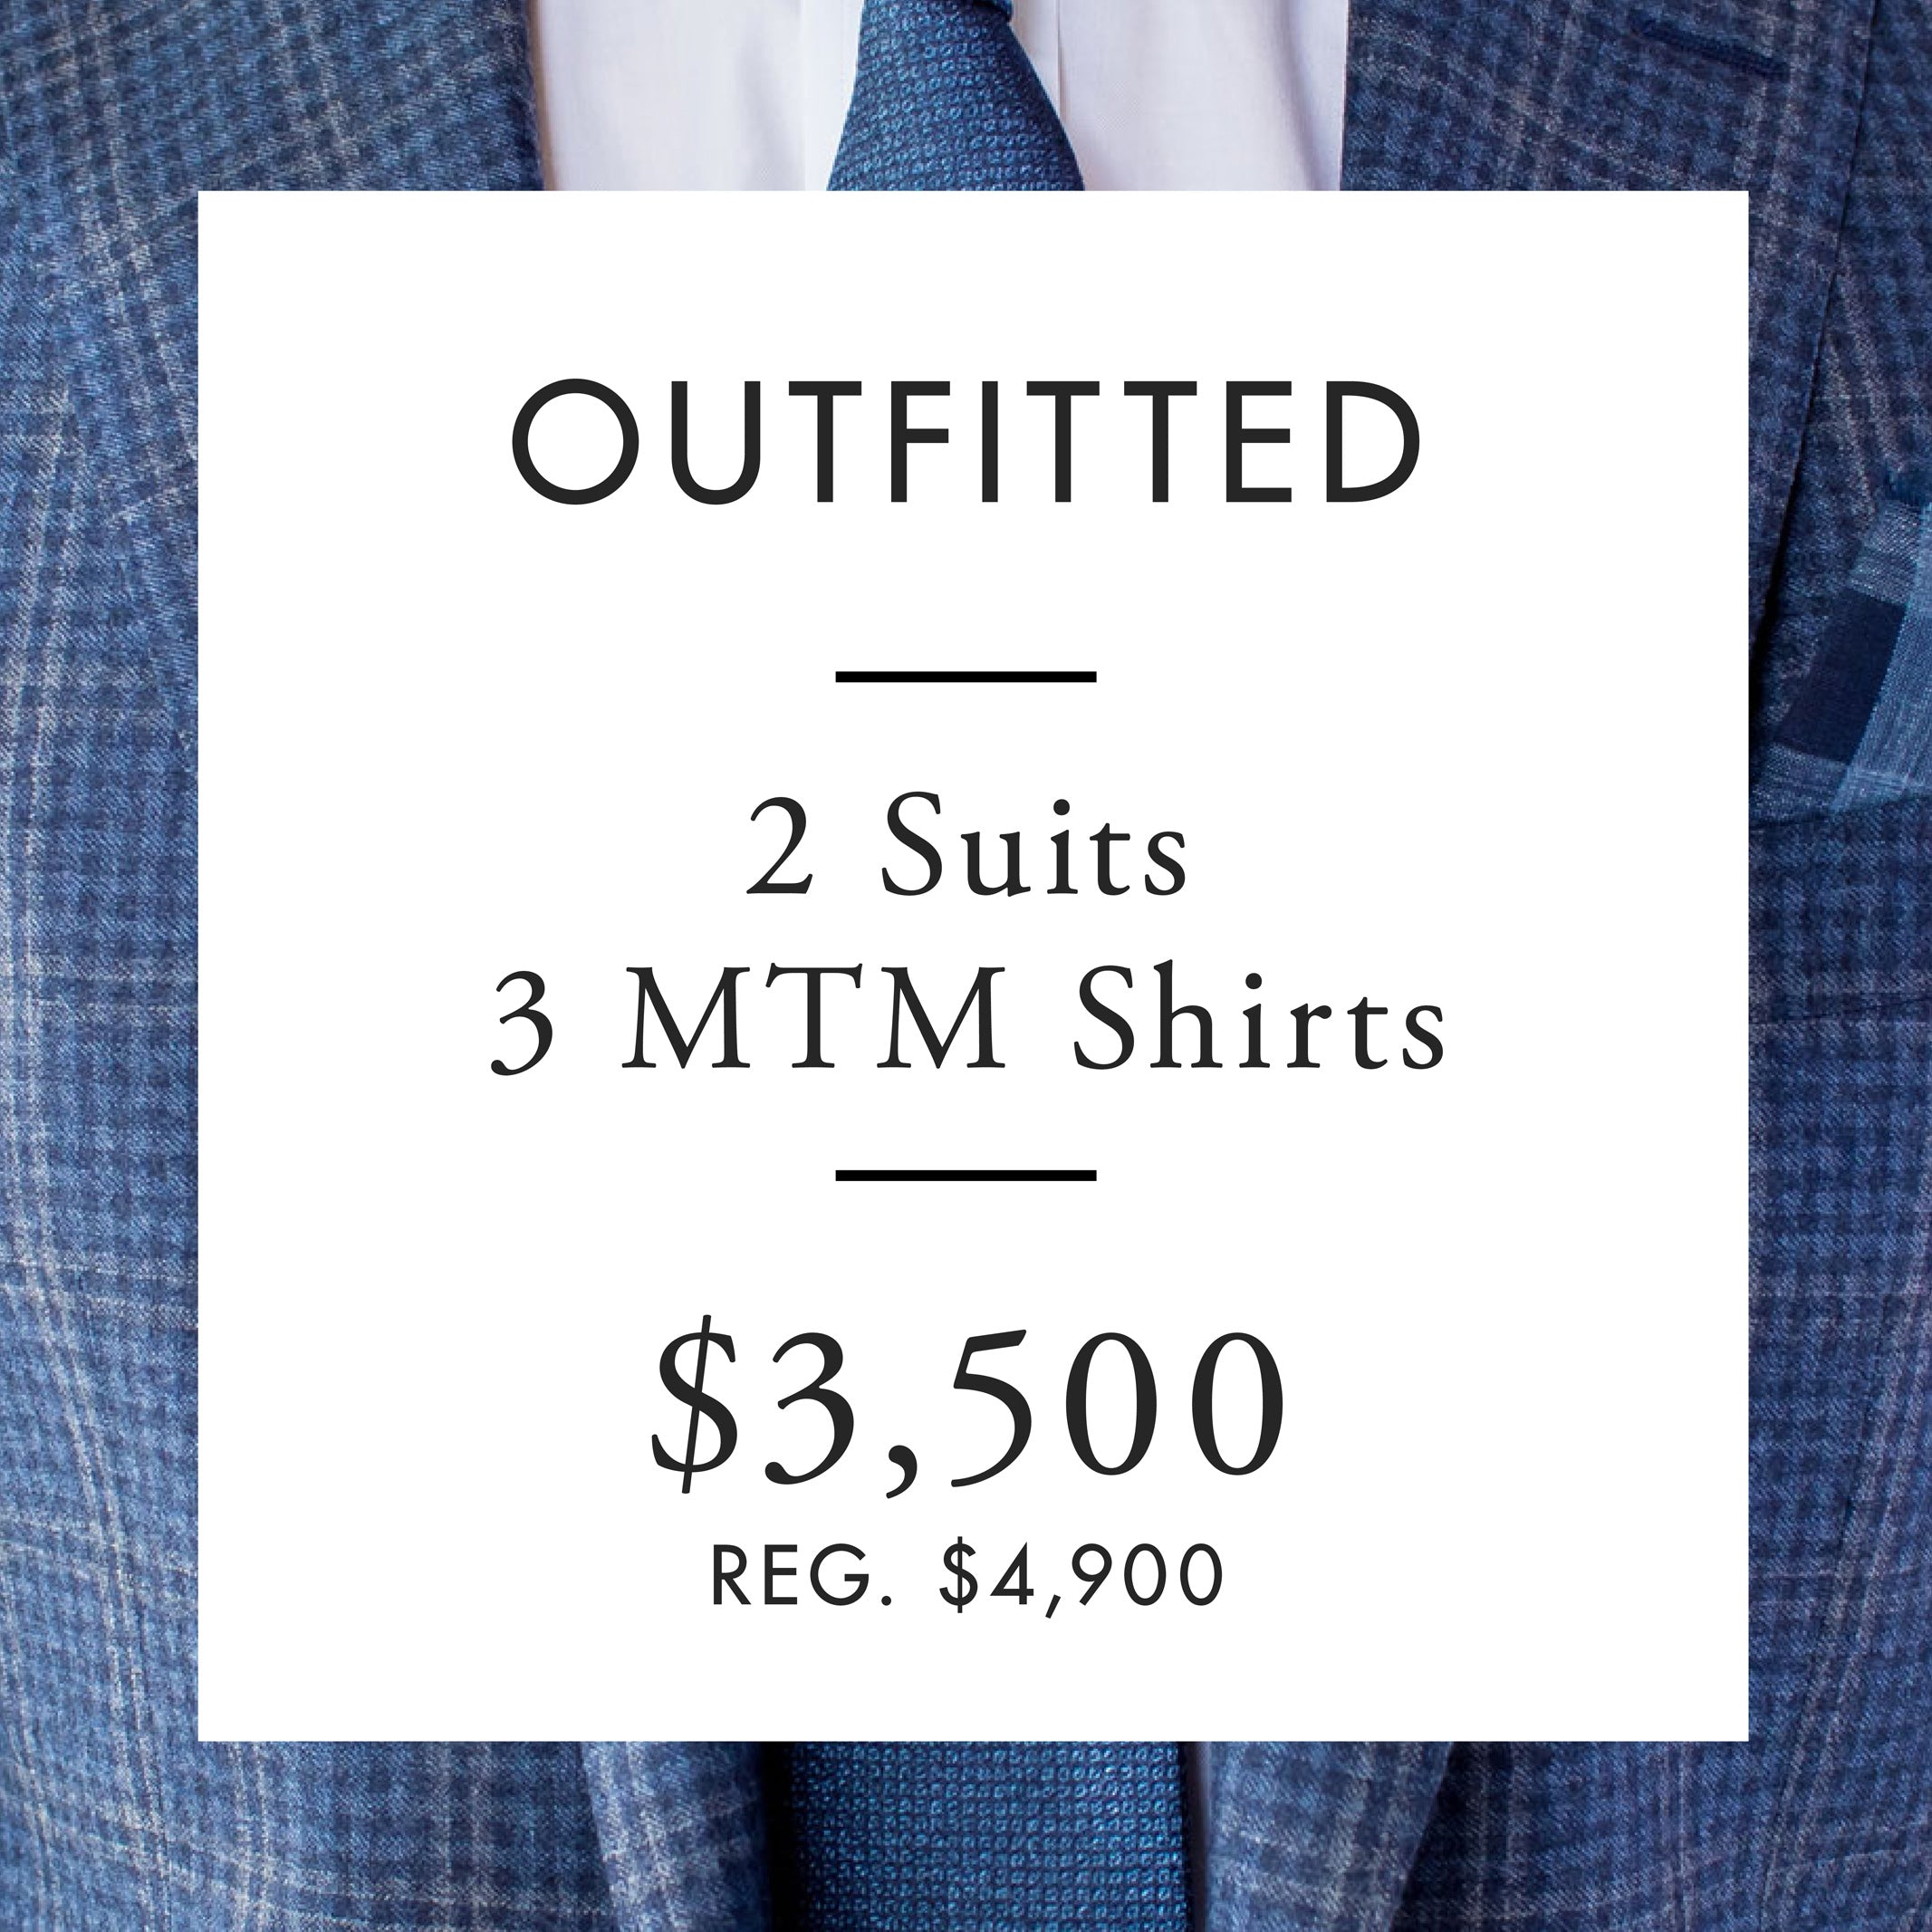 3 Custom Suits for $2,600